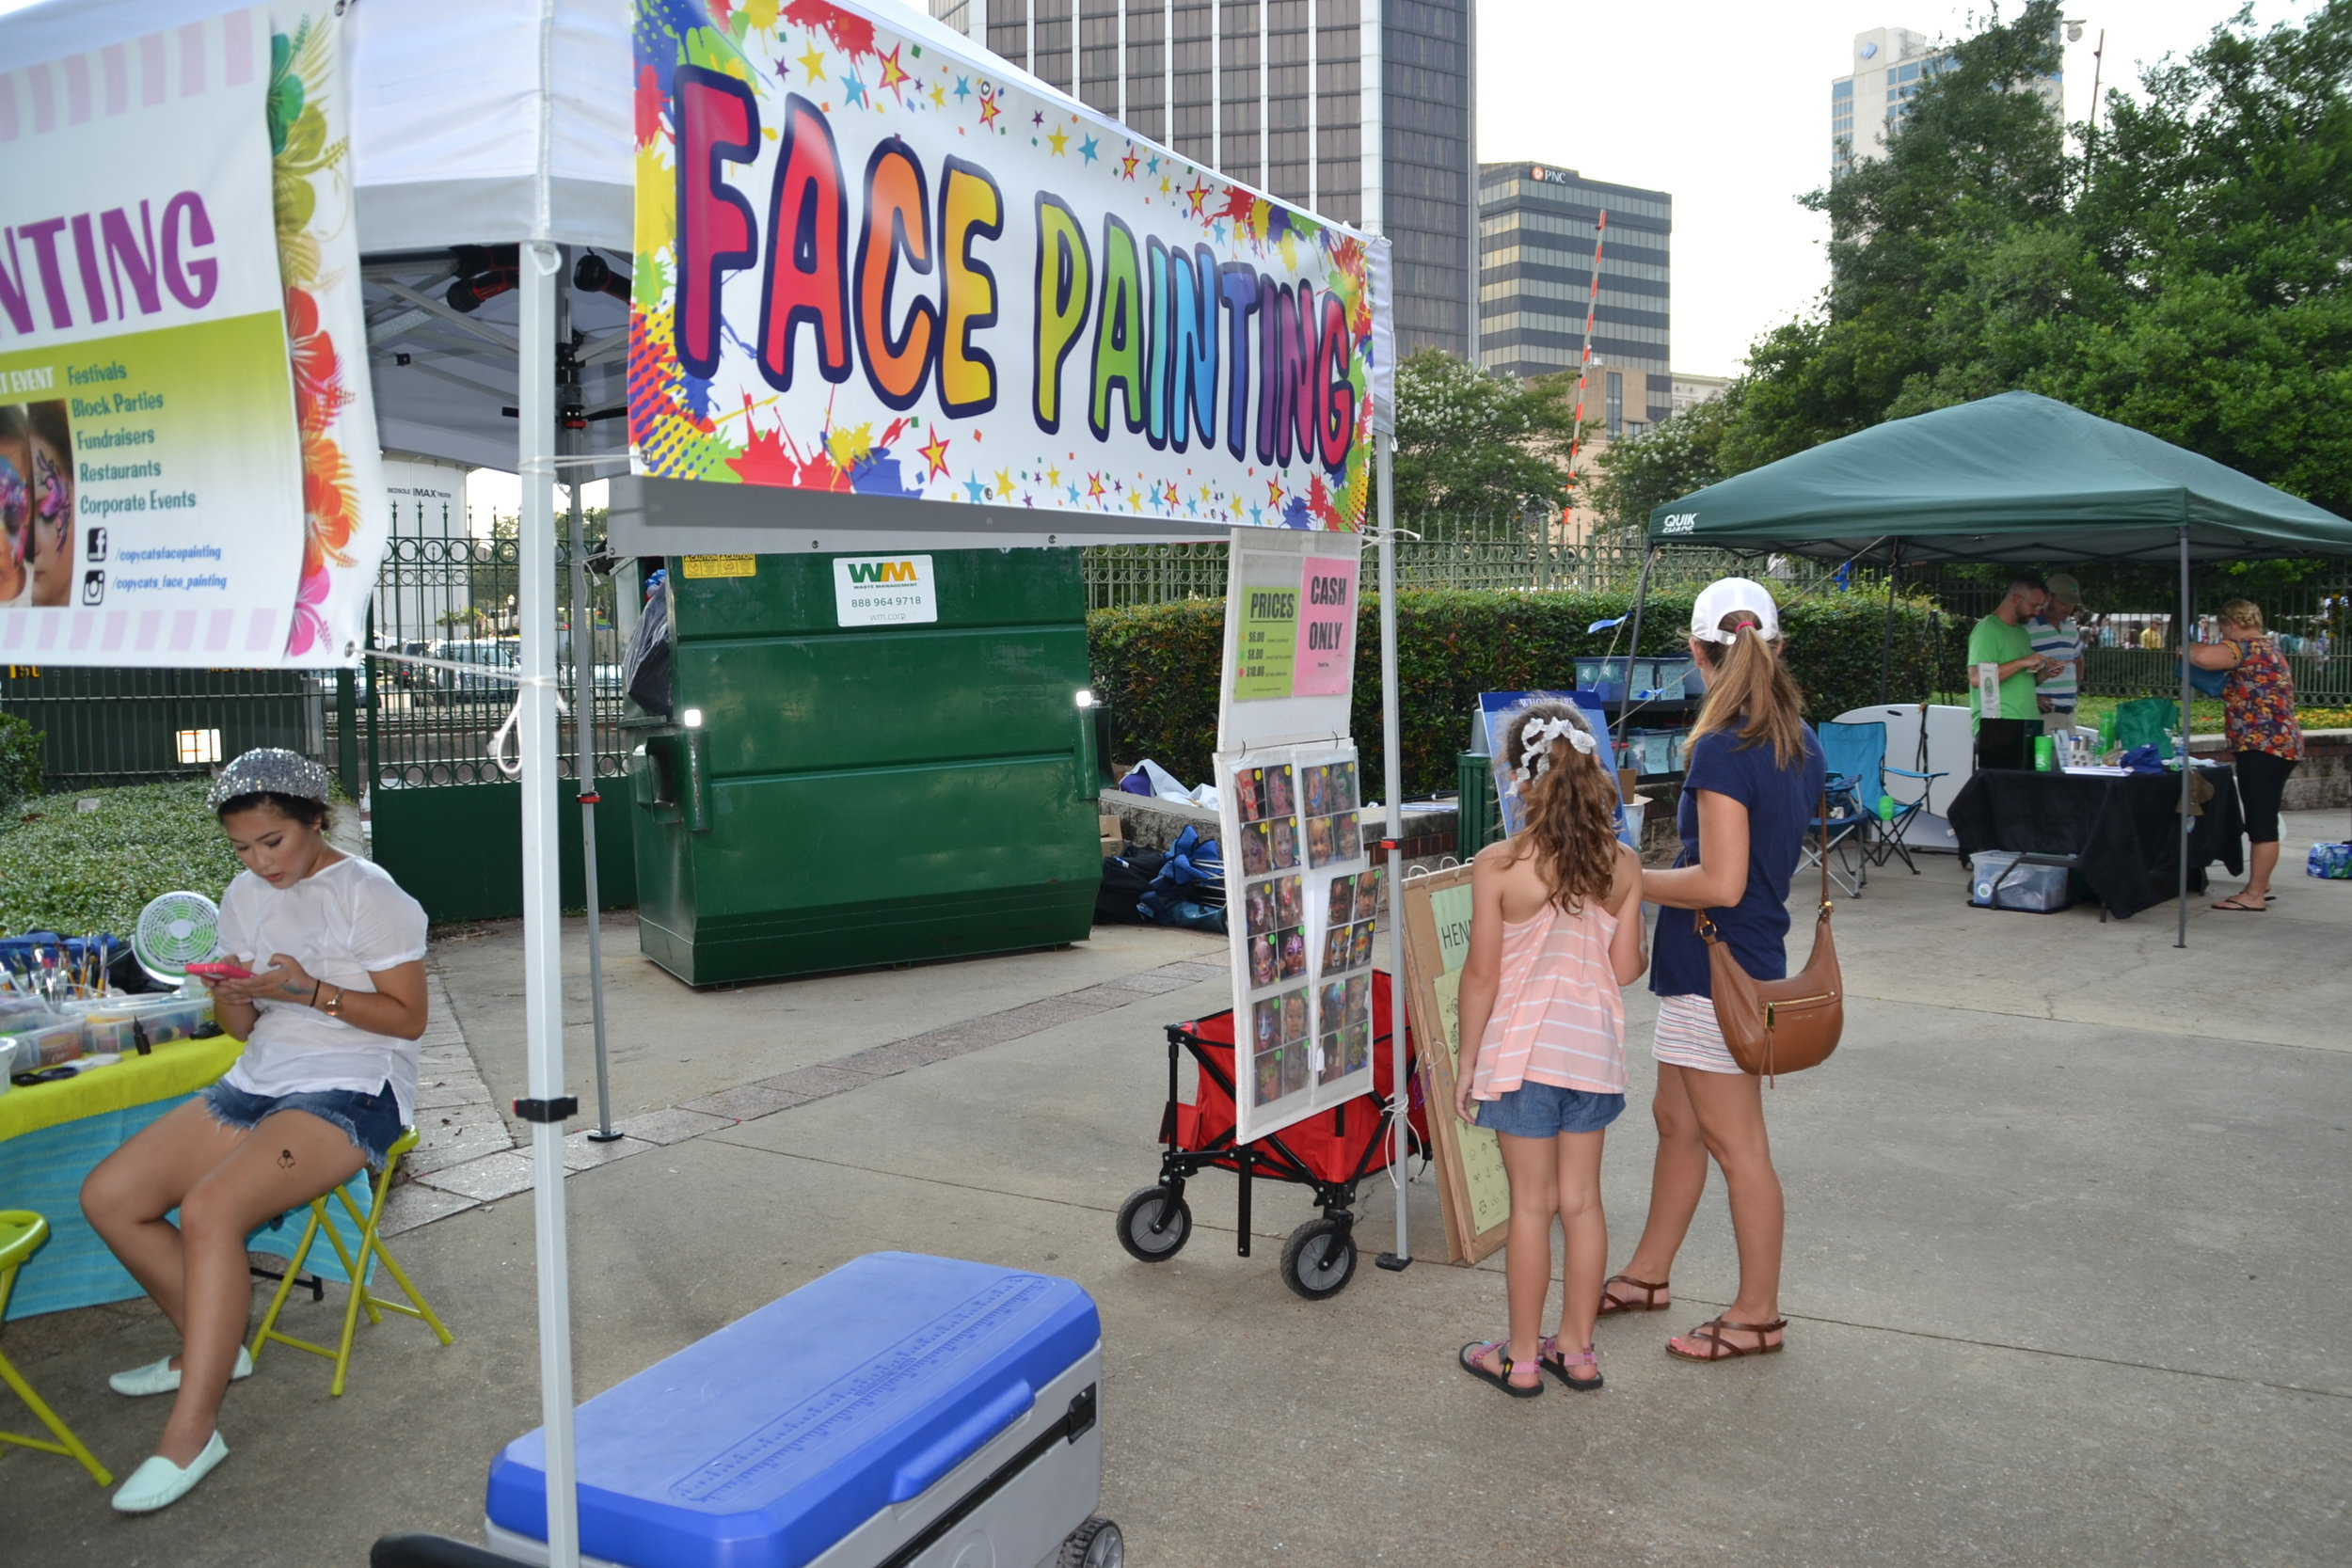 Face Painting Tent.JPG